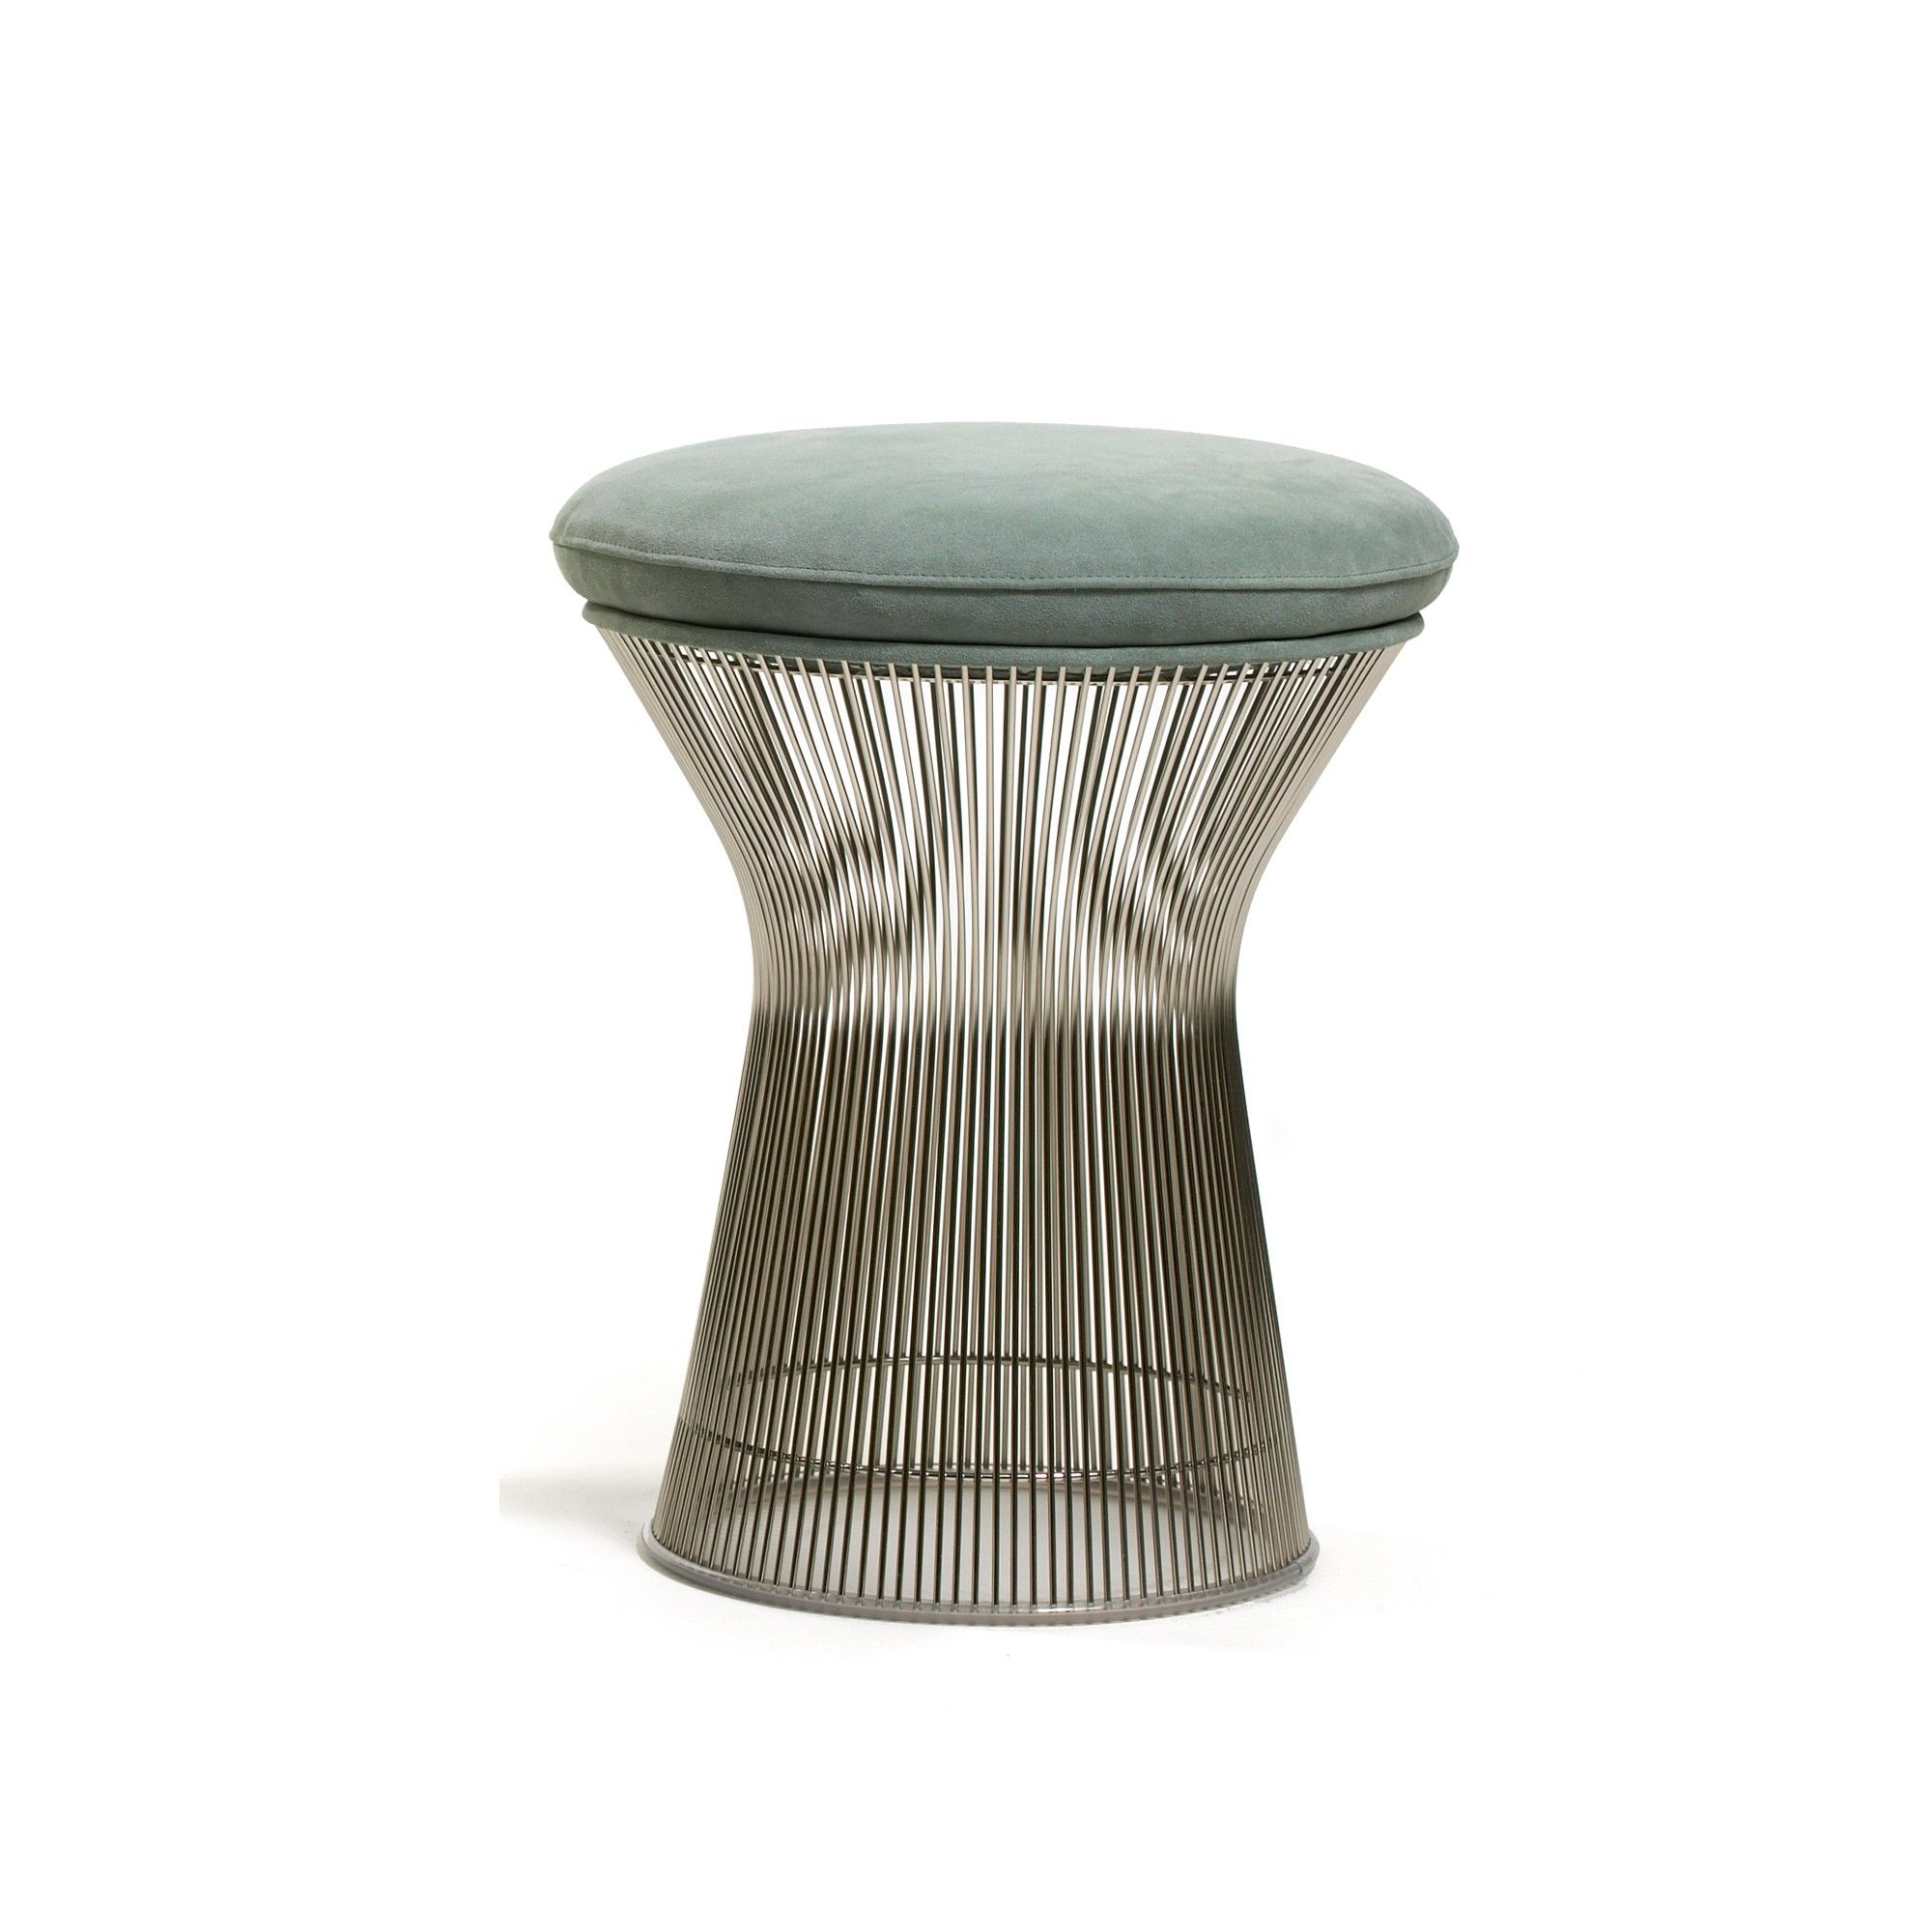 Platner stool n the 1960s Warren Platner transformed steel wire